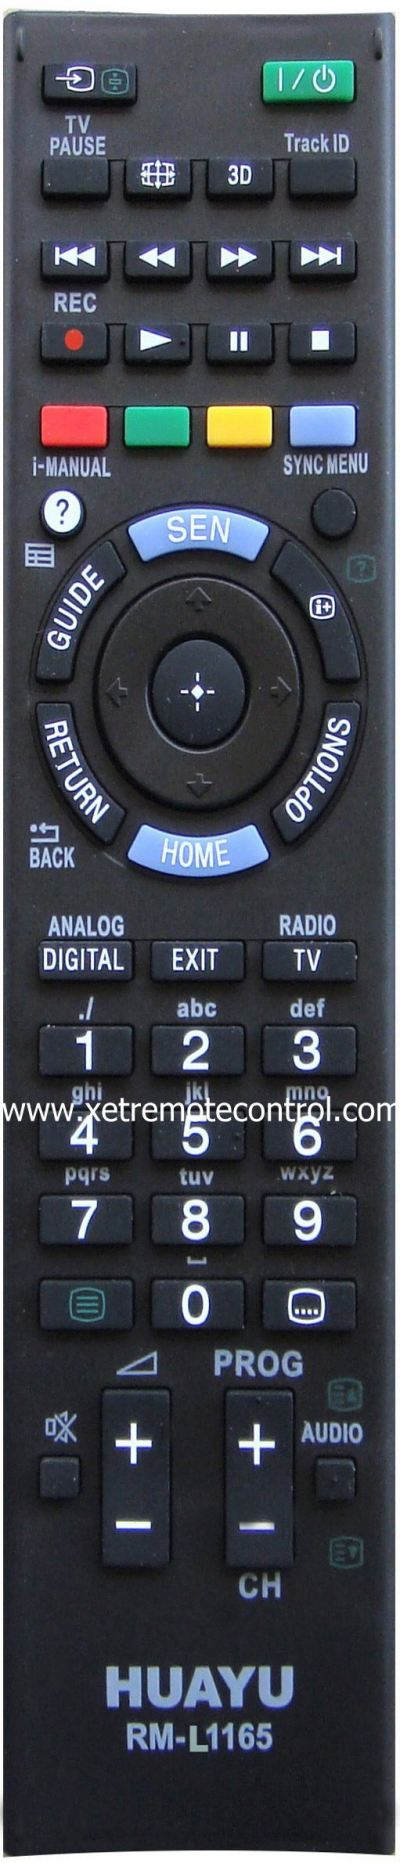 RM-L1165 SONY LCD/LED TV REMOTE CONTROL